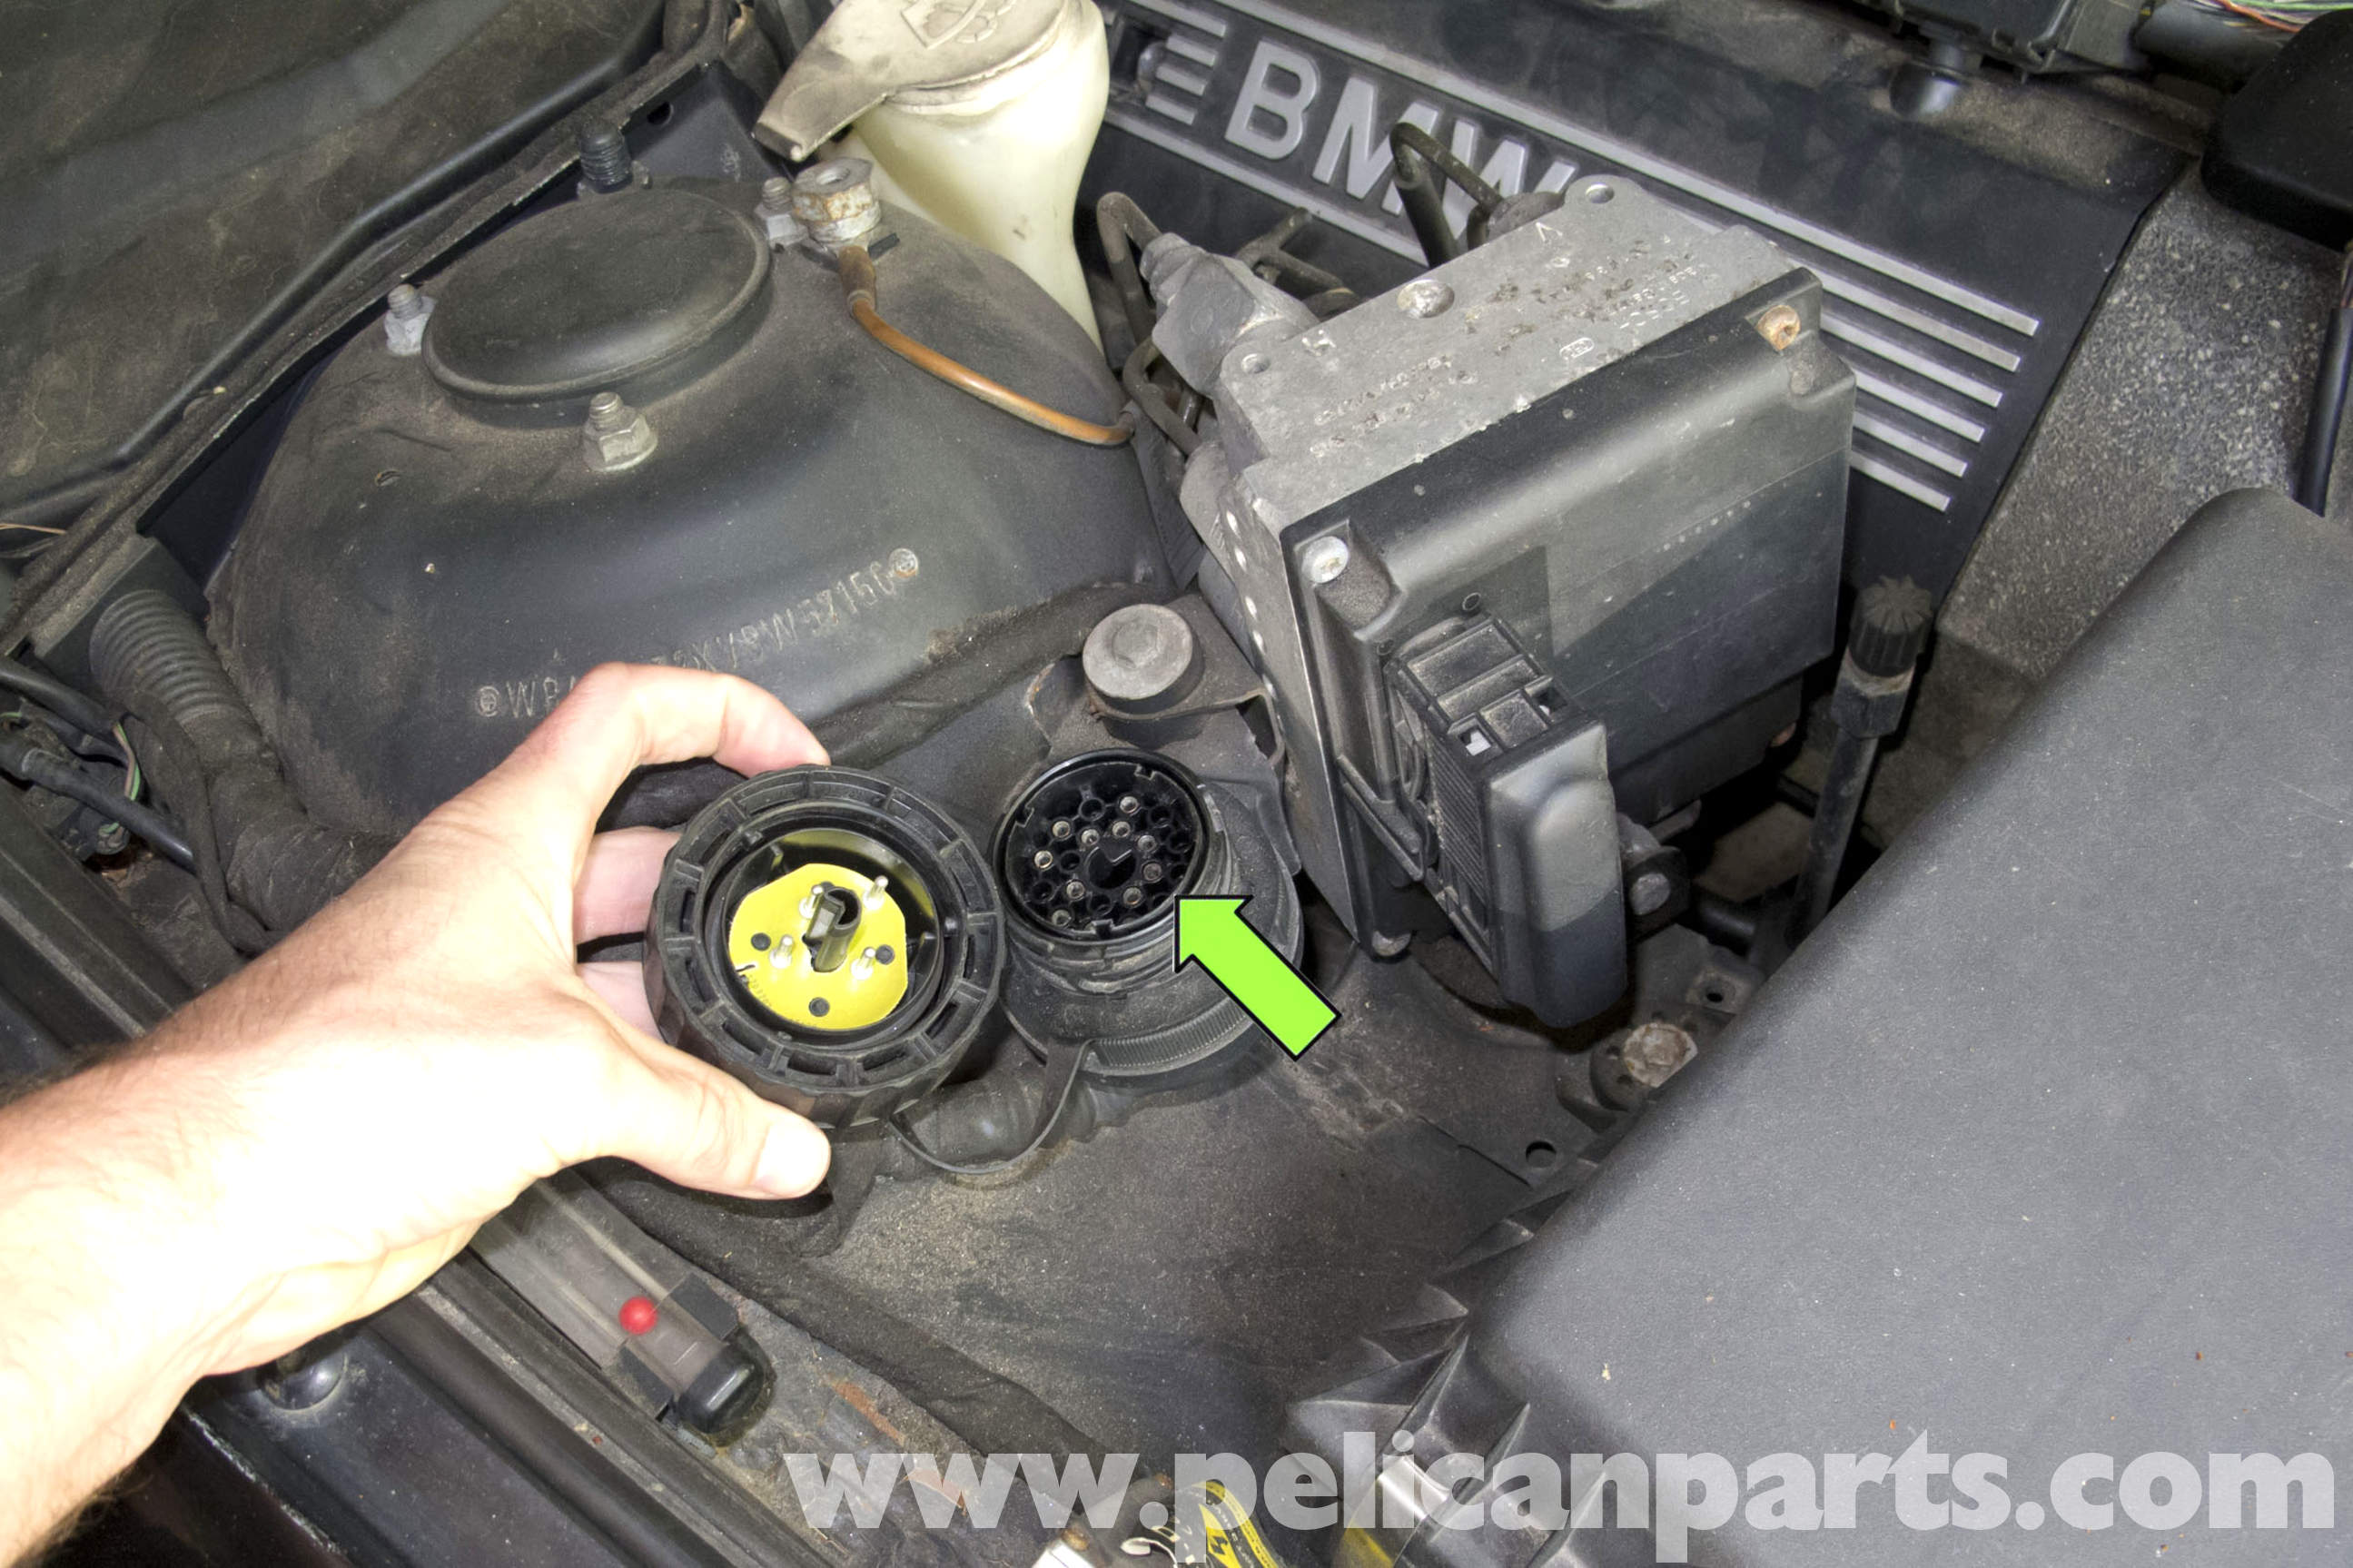 BMW E39 5-Series Reading Fault Codes | 1997-2003 525i, 528i